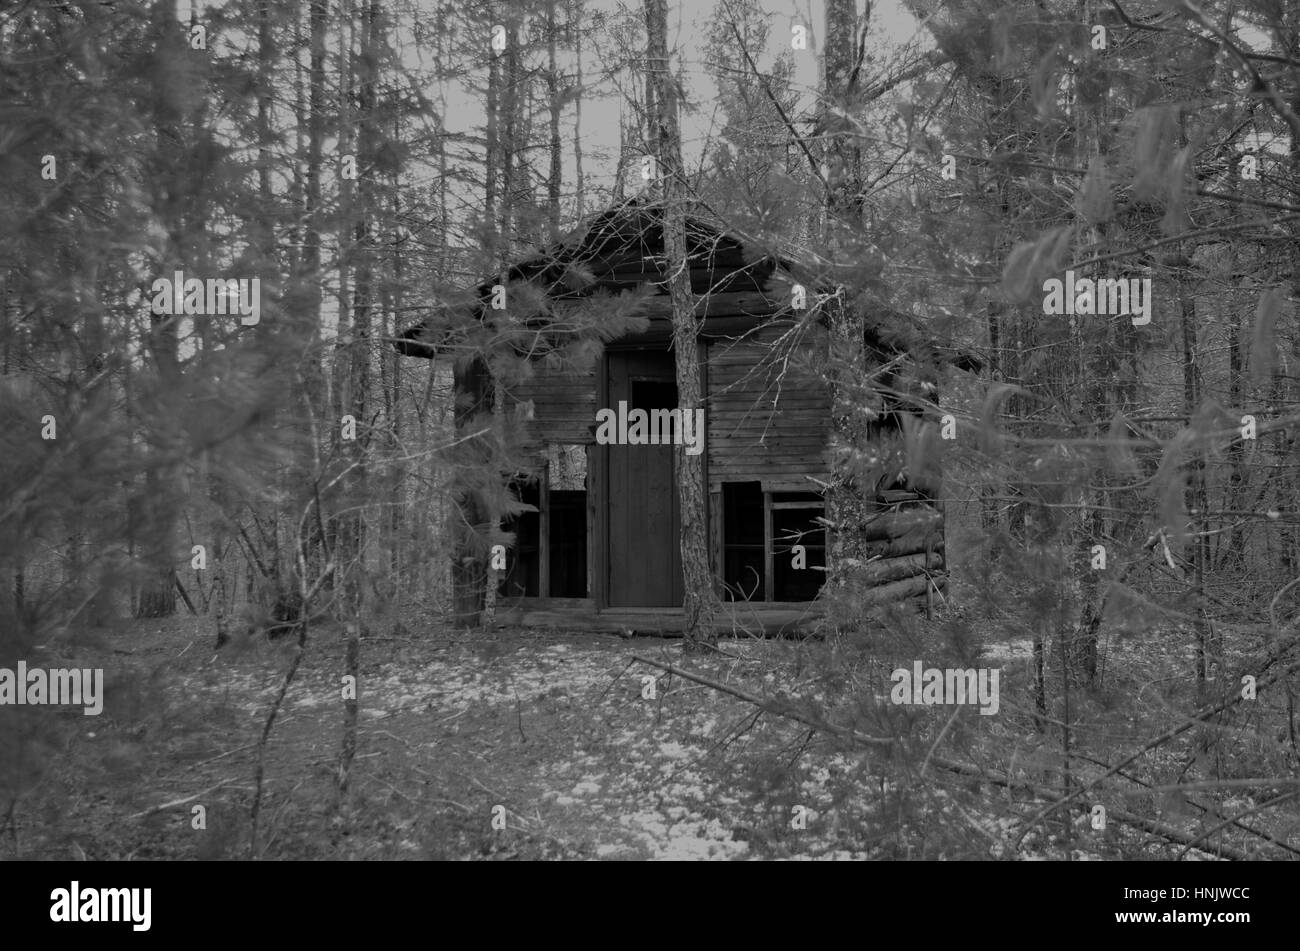 Spooky cabin in the woods (black and white) - Stock Image